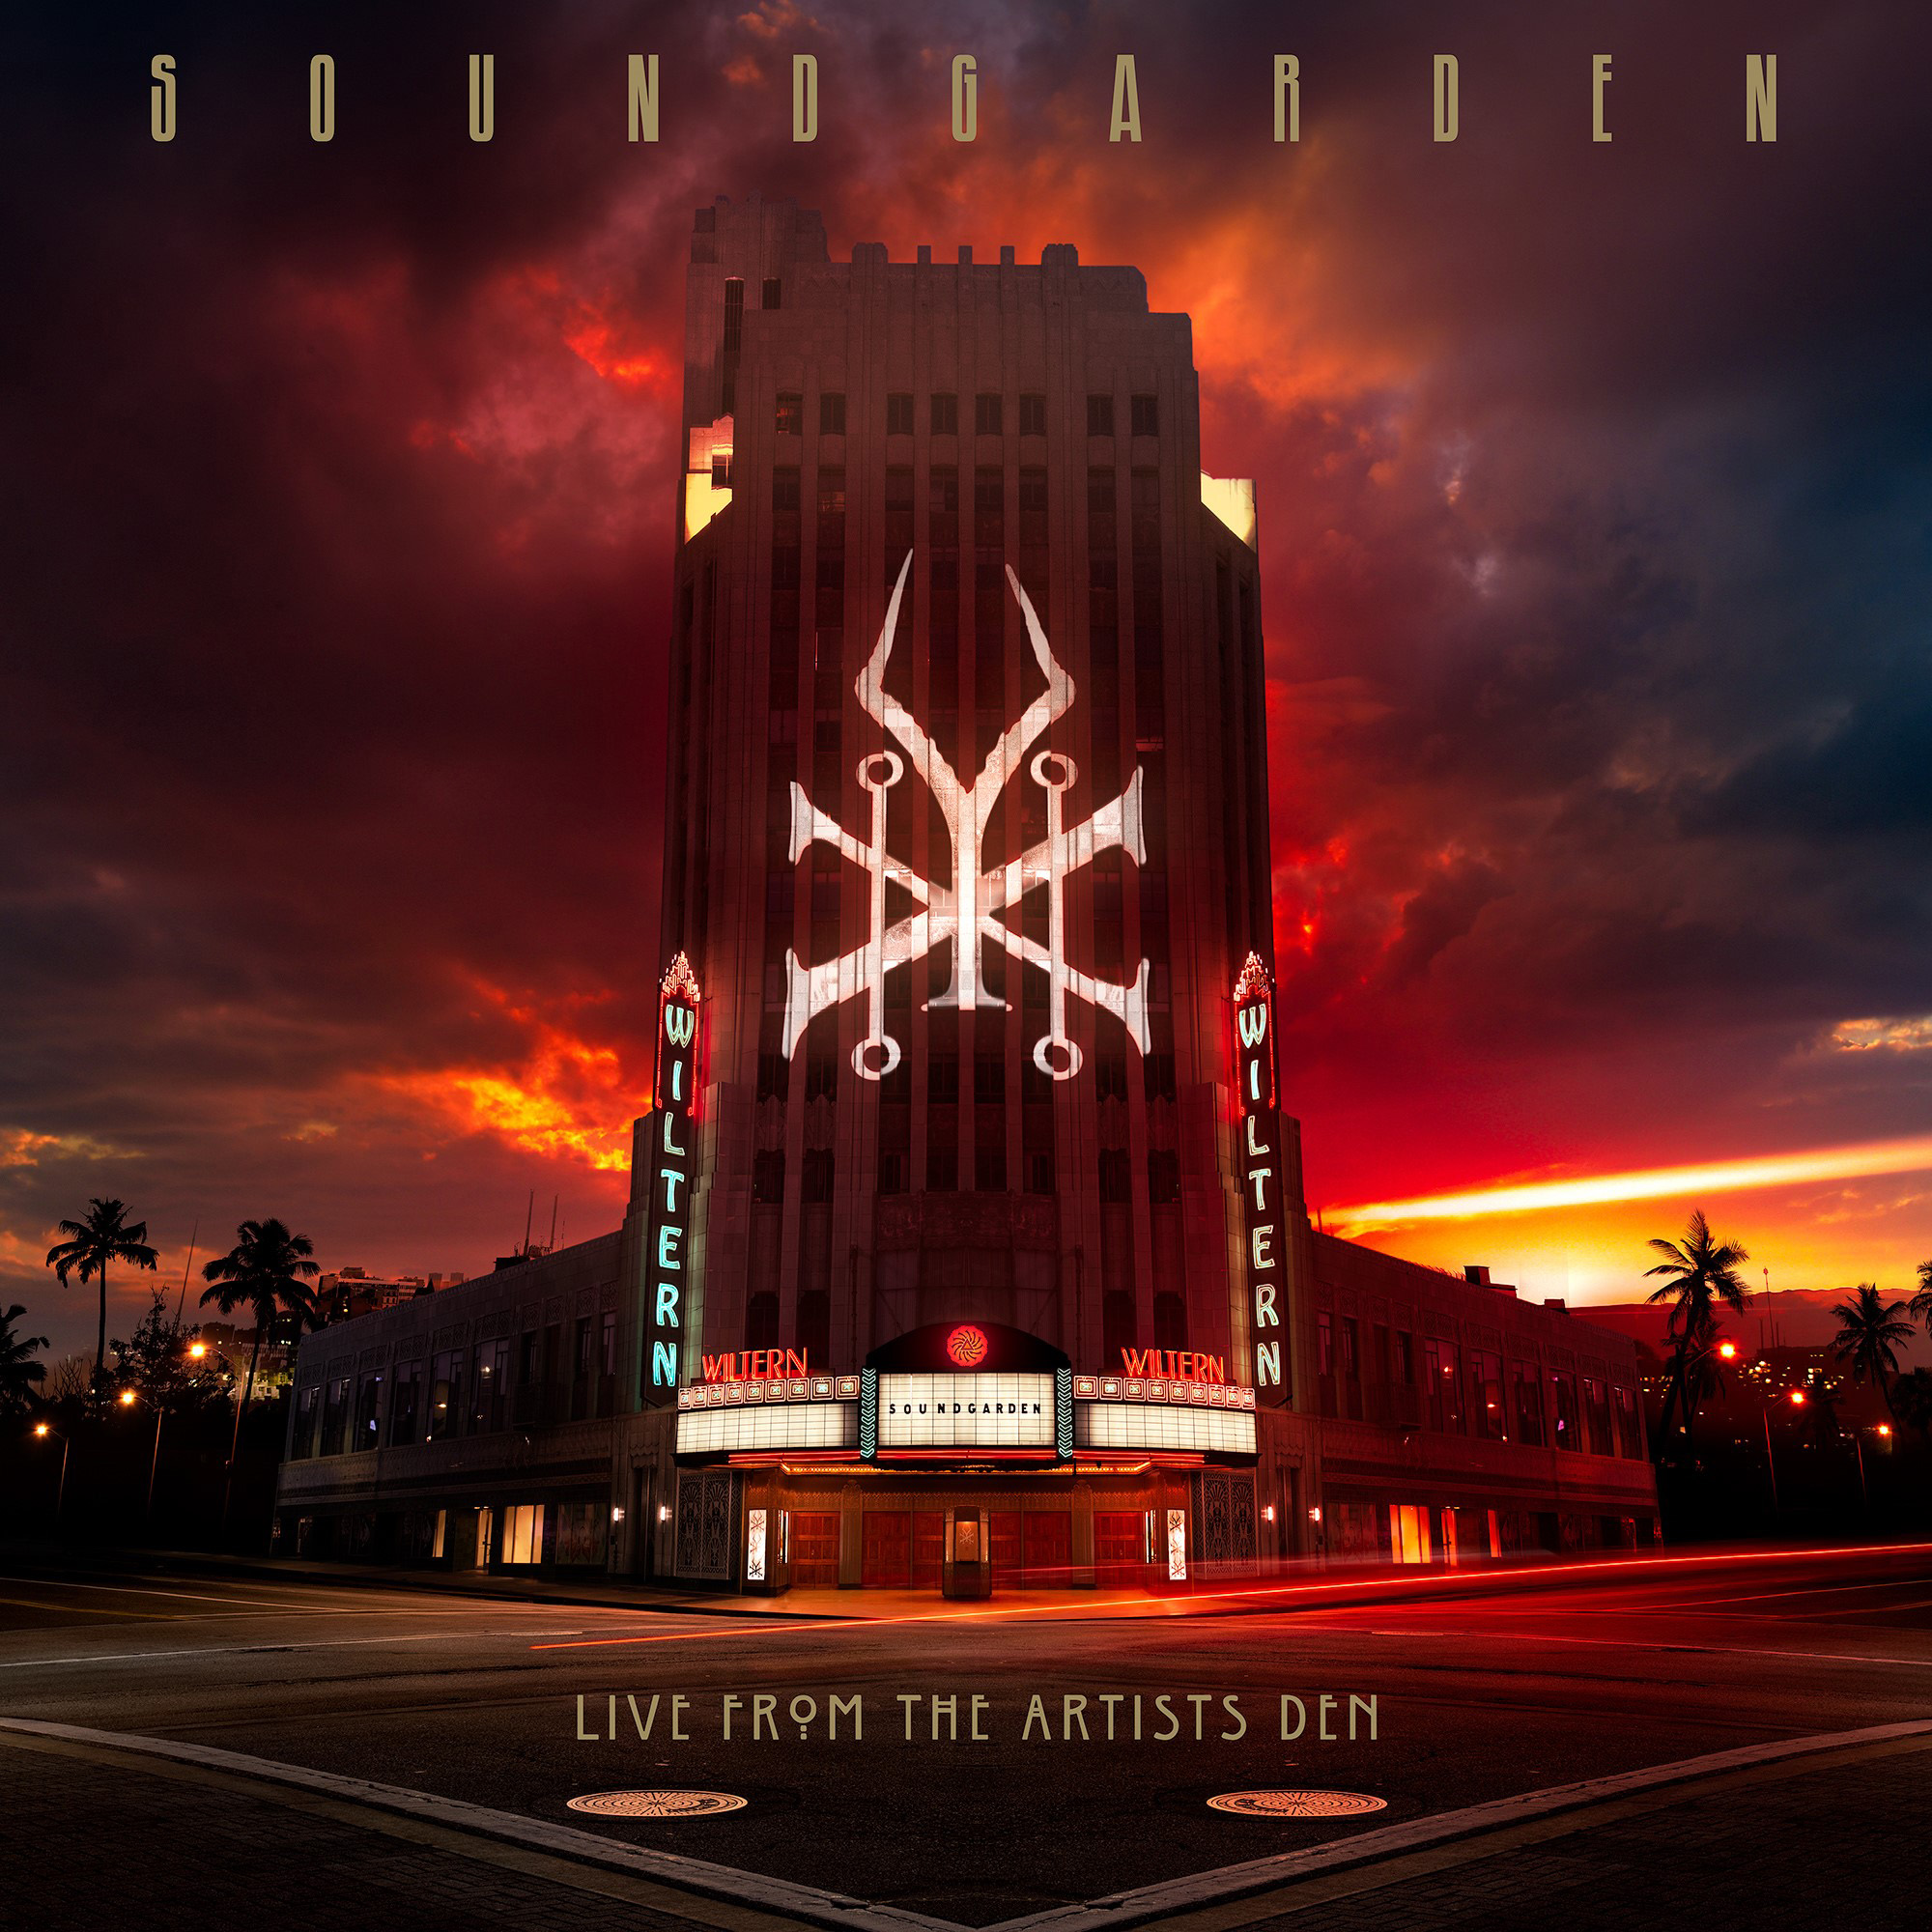 soundgarden live from the artists den